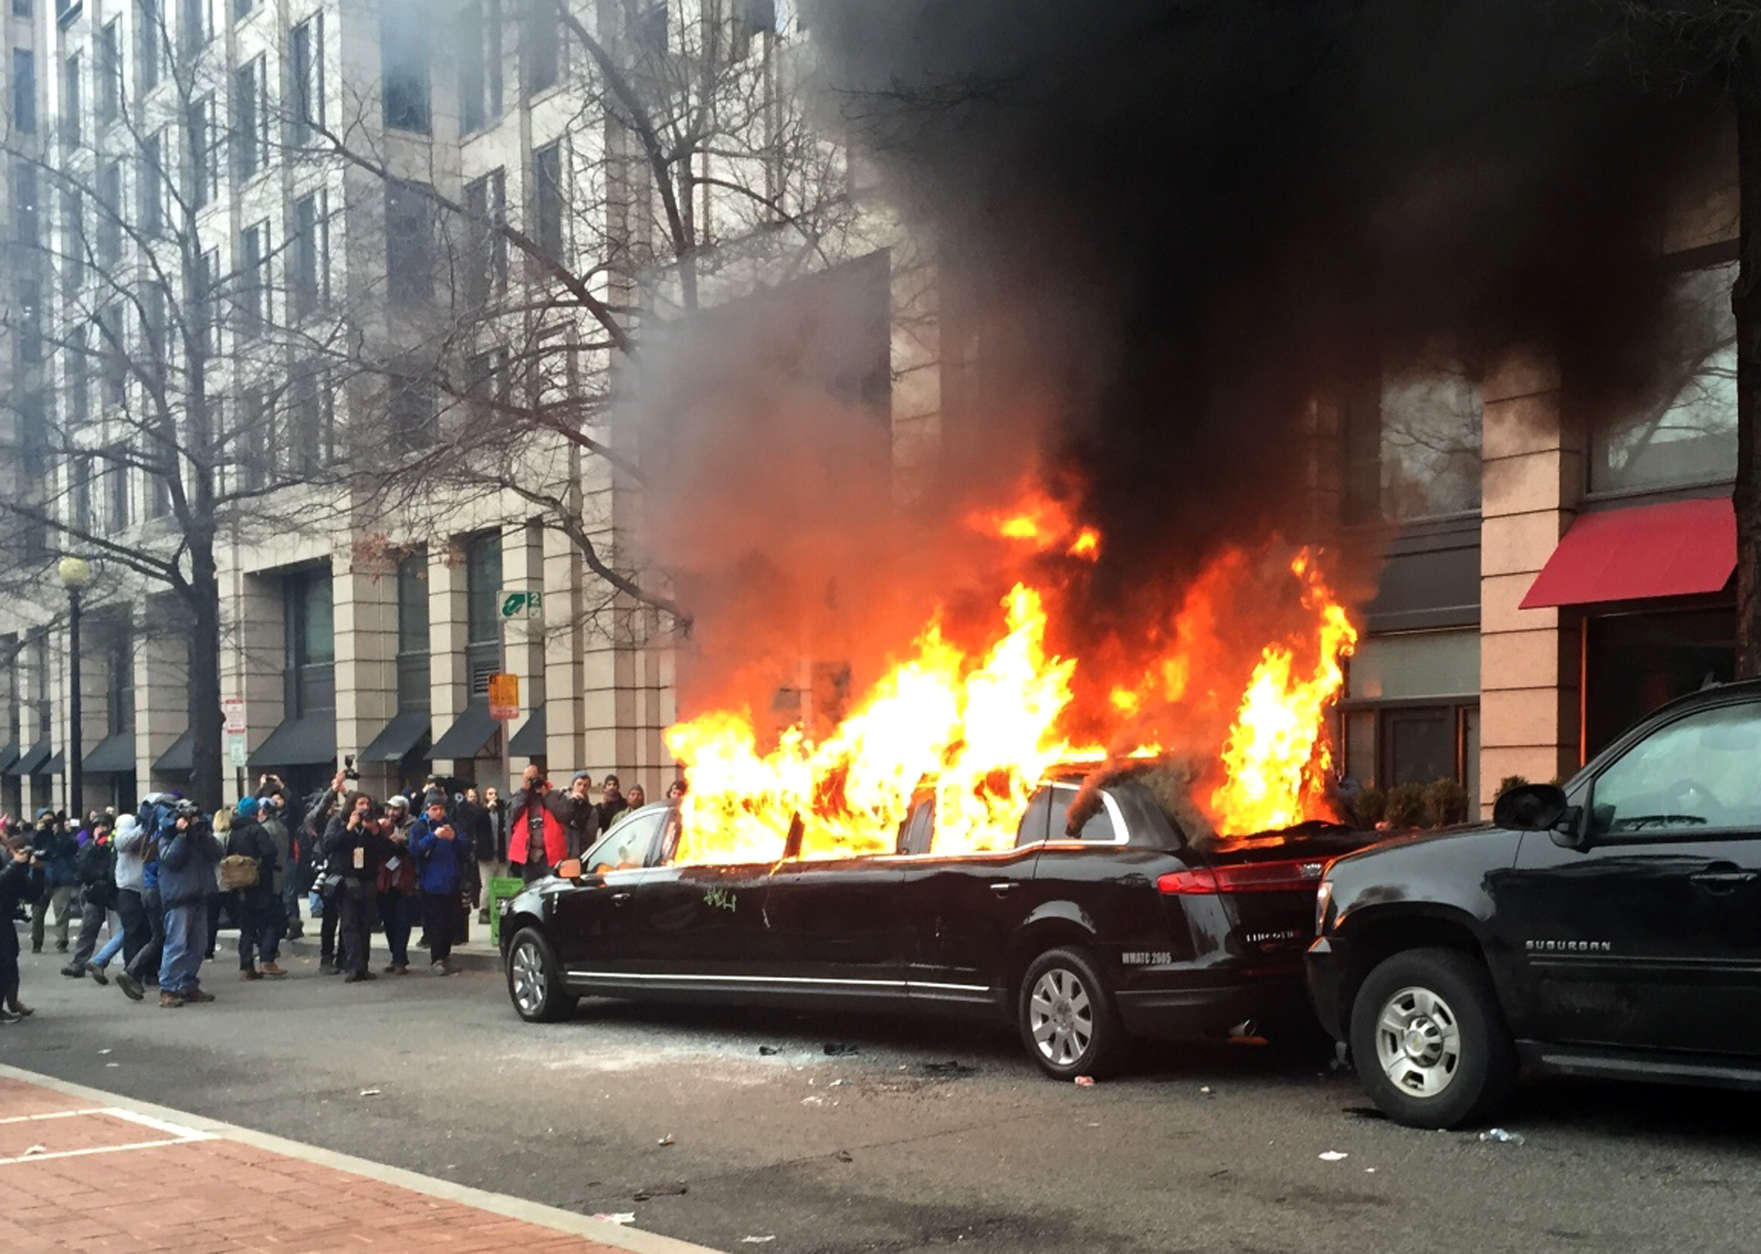 Protesters set a parked limousine on fire in downtown Washington, Friday, Jan. 20, 2017, during the inauguration of President Donald Trump. Protesters registered their rage against the new president Friday in a chaotic confrontation with police who used pepper spray and stun grenades in a melee just blocks from Donald Trump's inaugural parade route. Scores were arrested for trashing property and attacking officers. (AP Photo/Juliet Linderman)